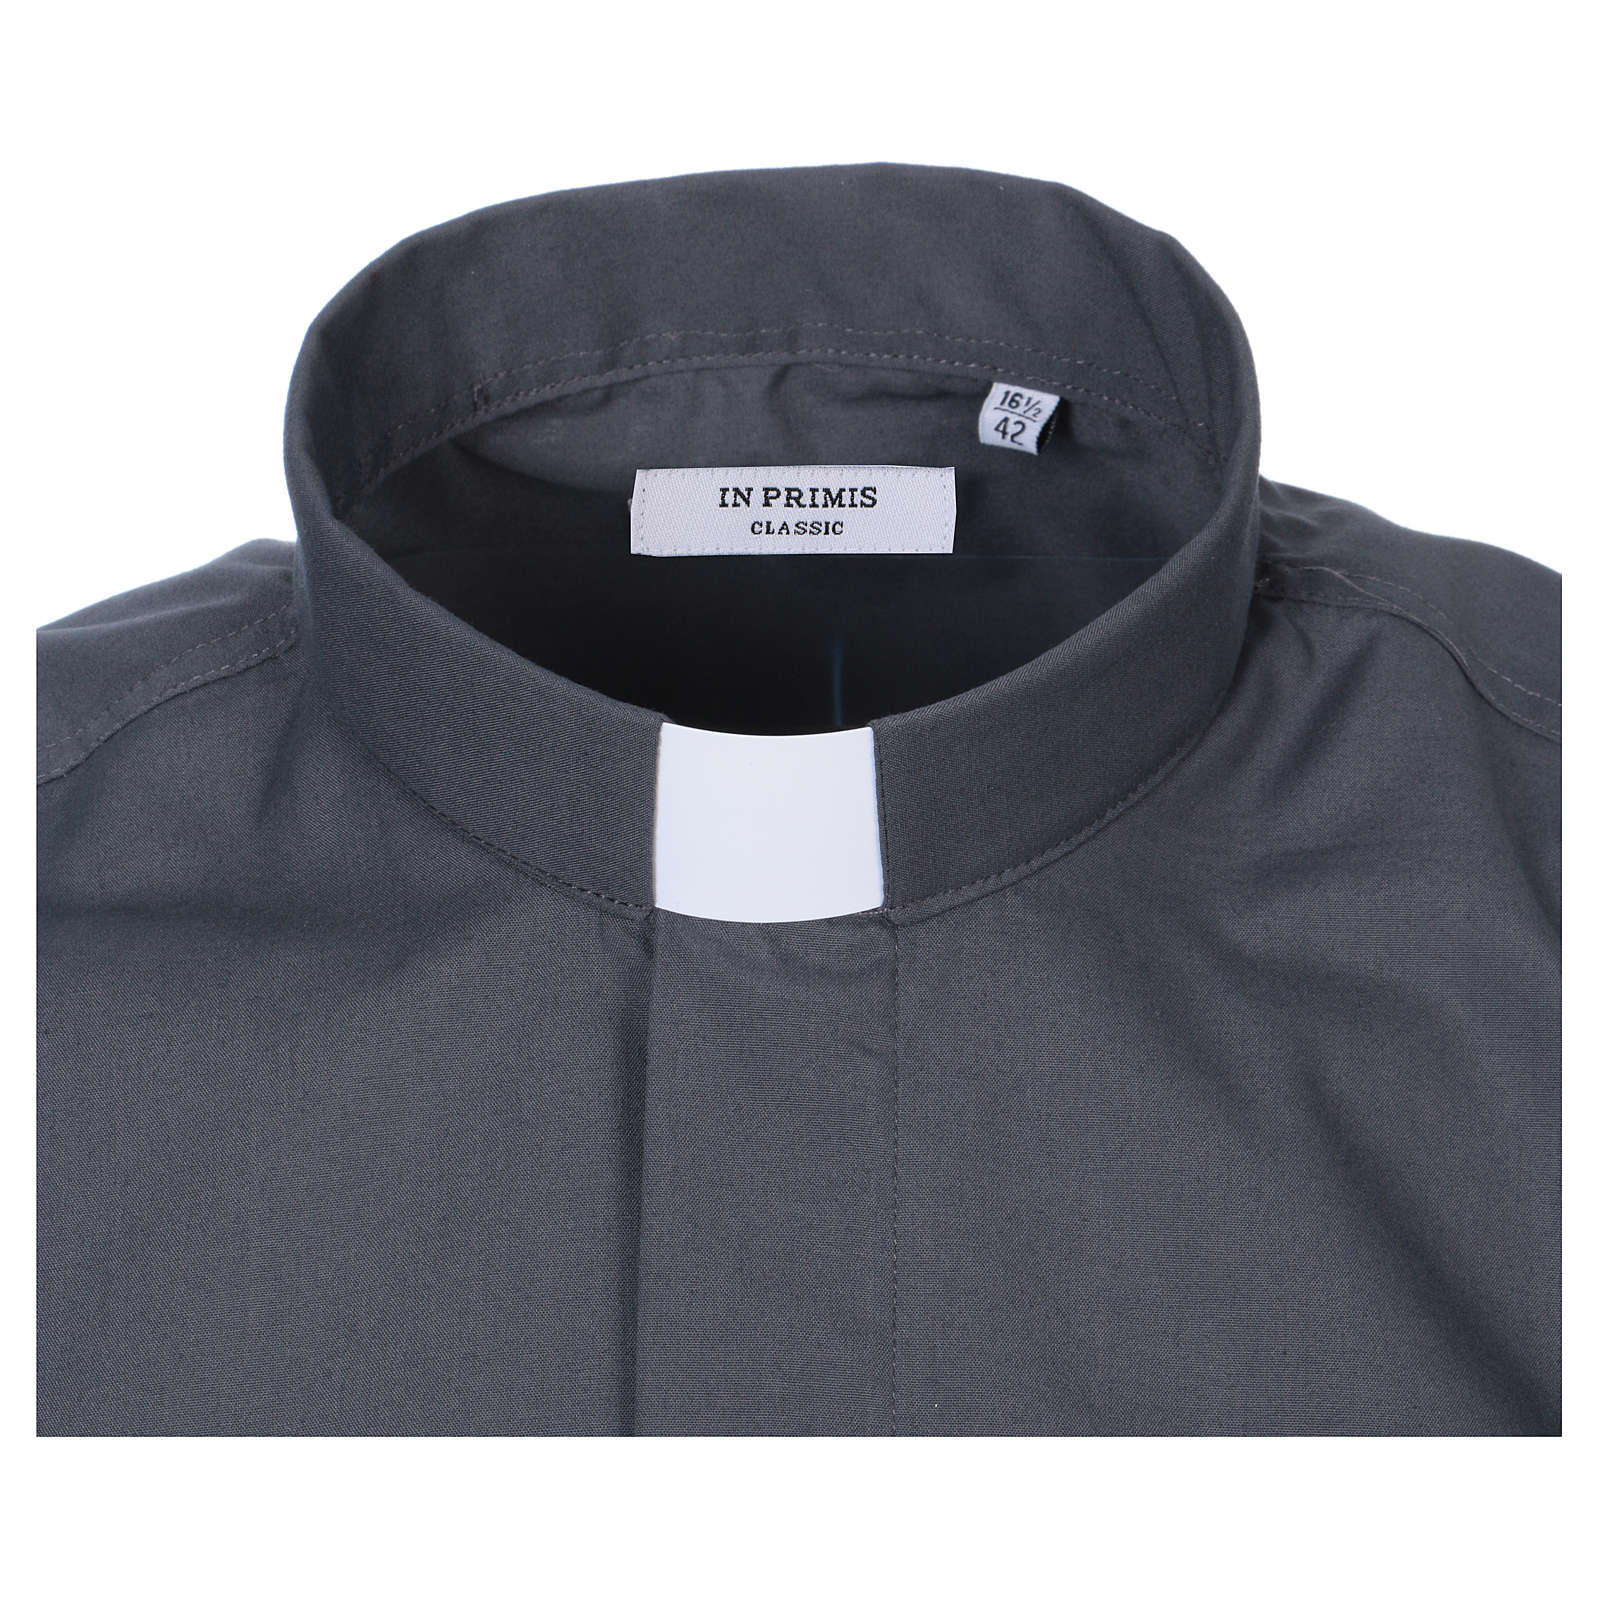 Camicia Collo Clergy manica corta misto grigio scuro 4